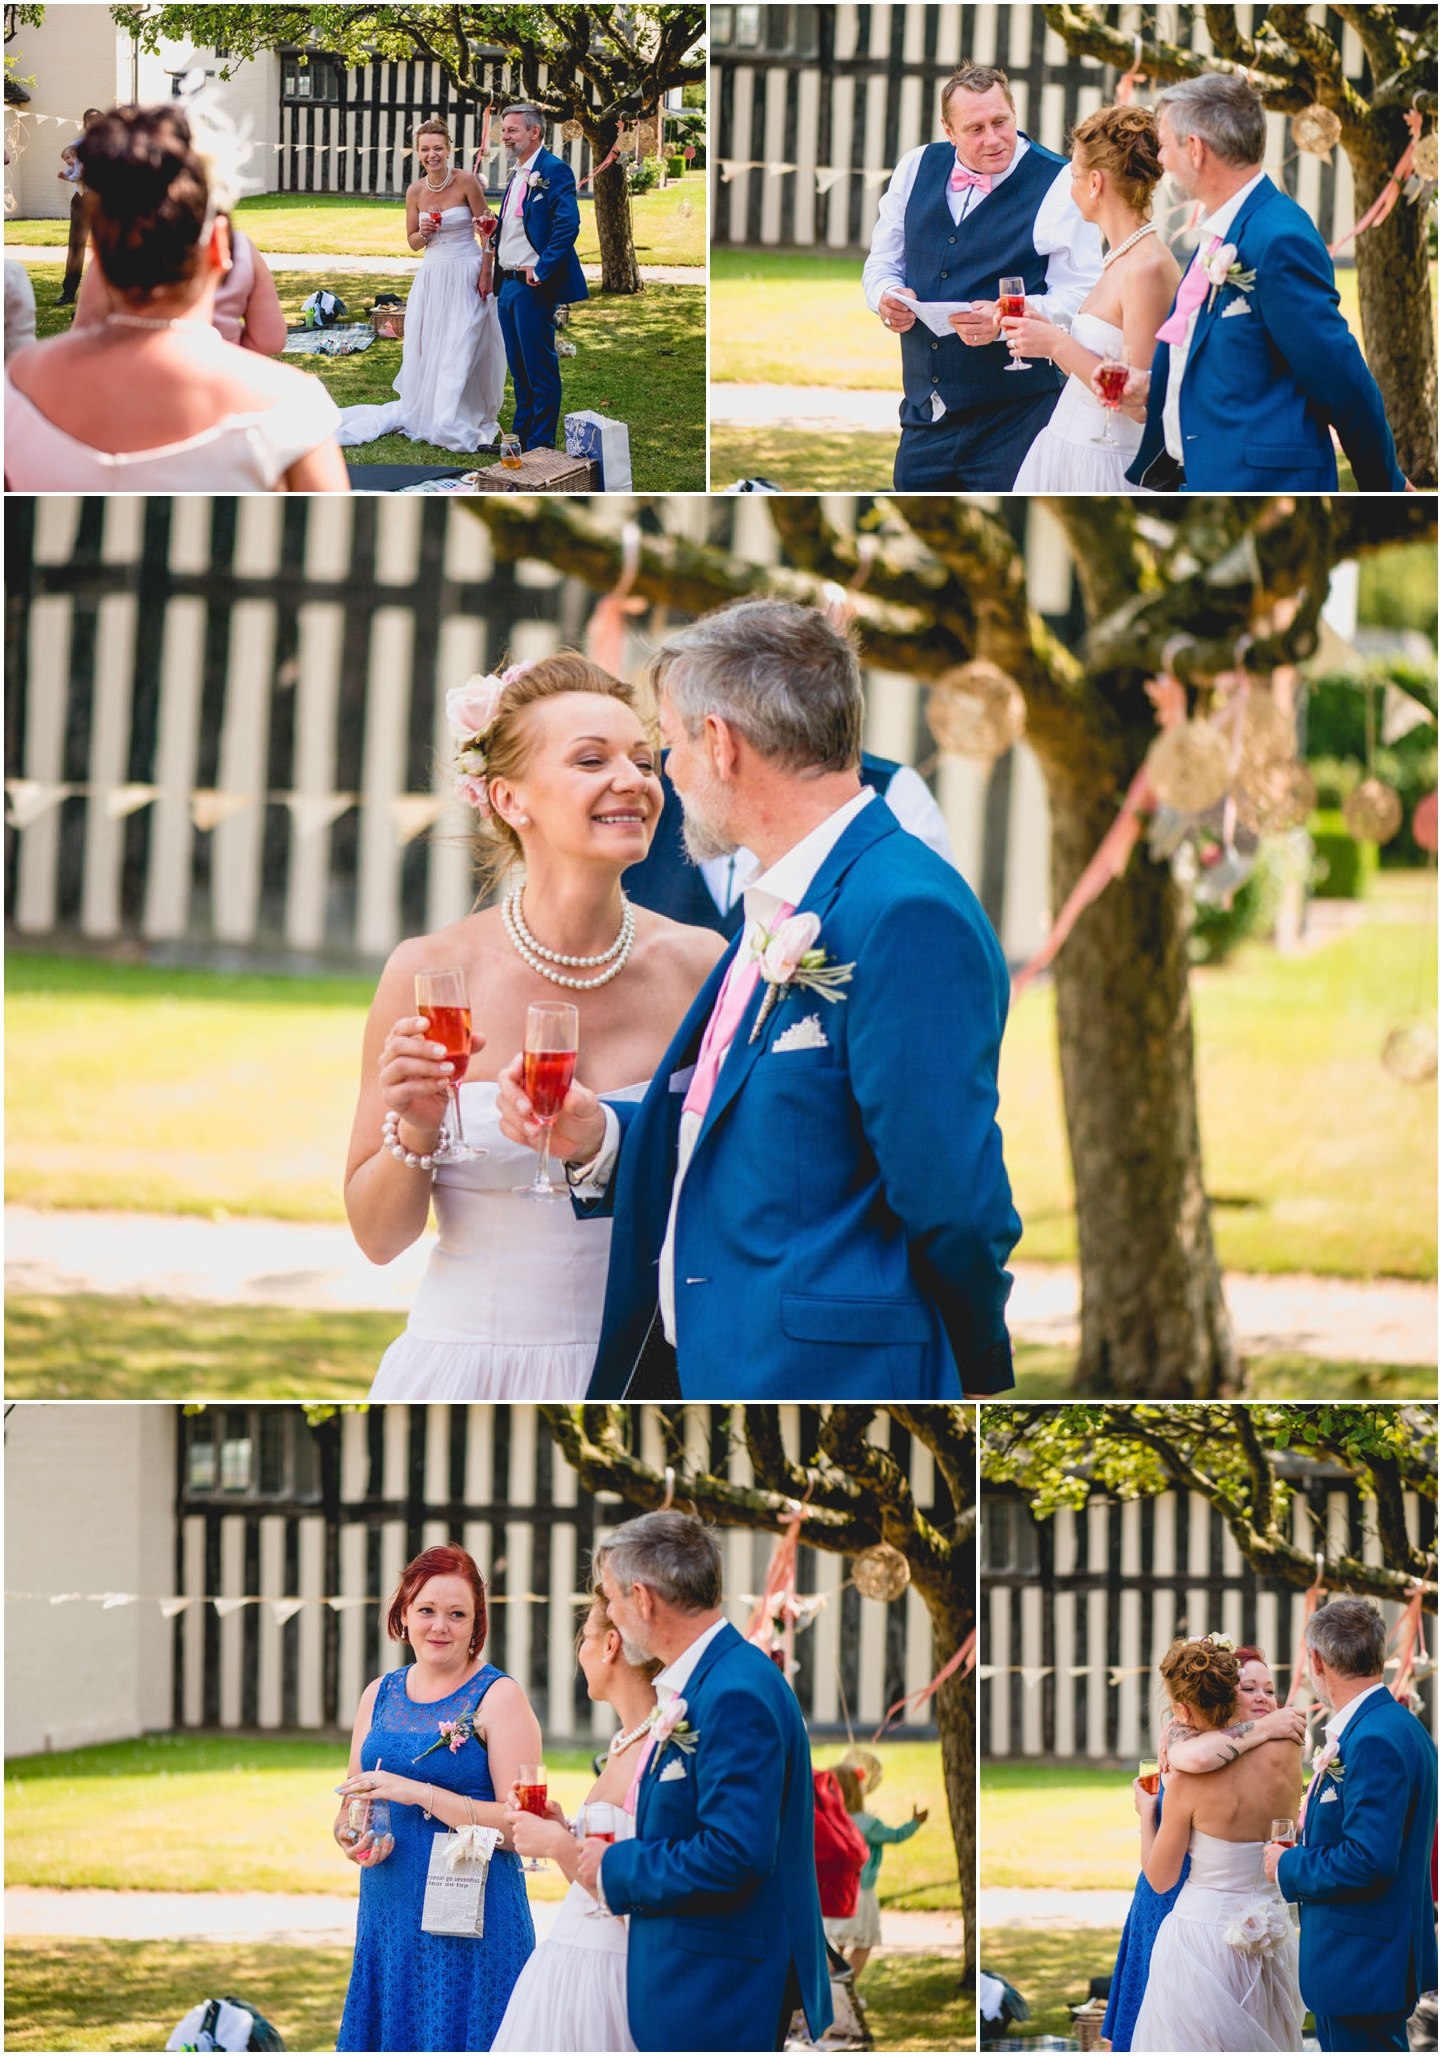 Daniella and Mark Wedding at Blakesley Hall in Birmingham, West Midlands by Lisa Carpenter Photography, Sutton Coldfield based wedding photographer, speeches